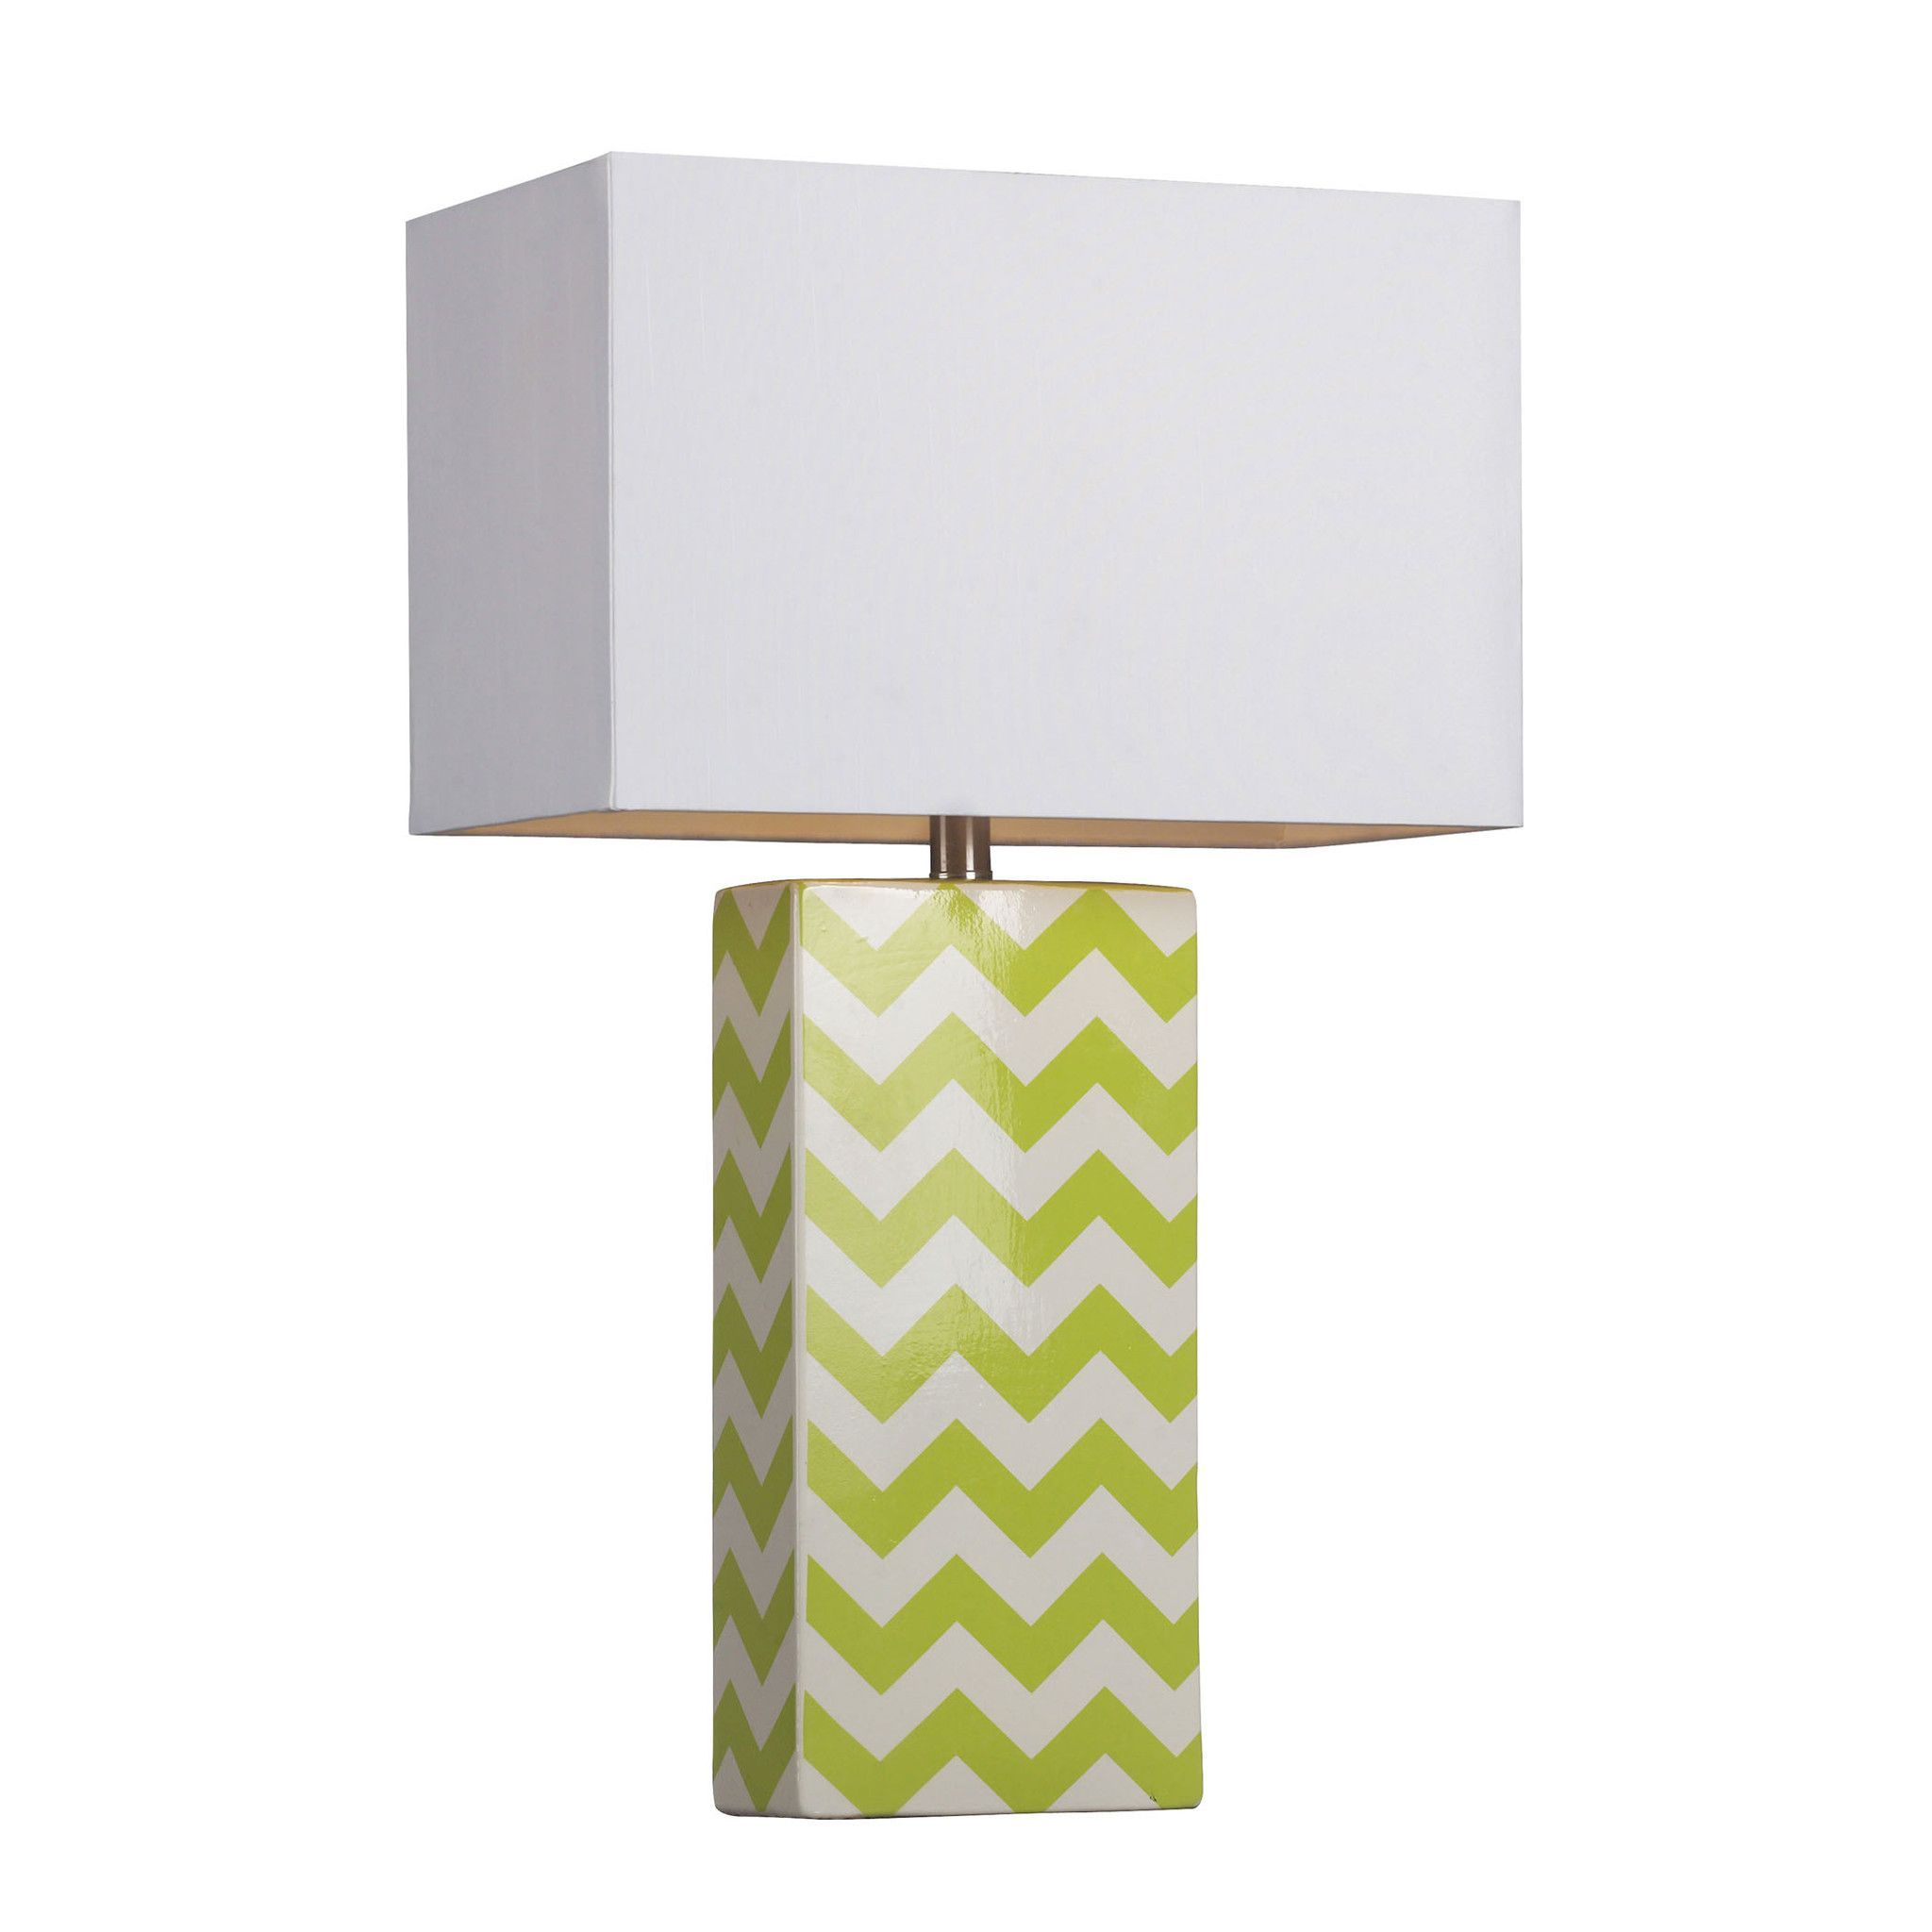 Chevron Print Ceramic Table Lamp In Green And White D278